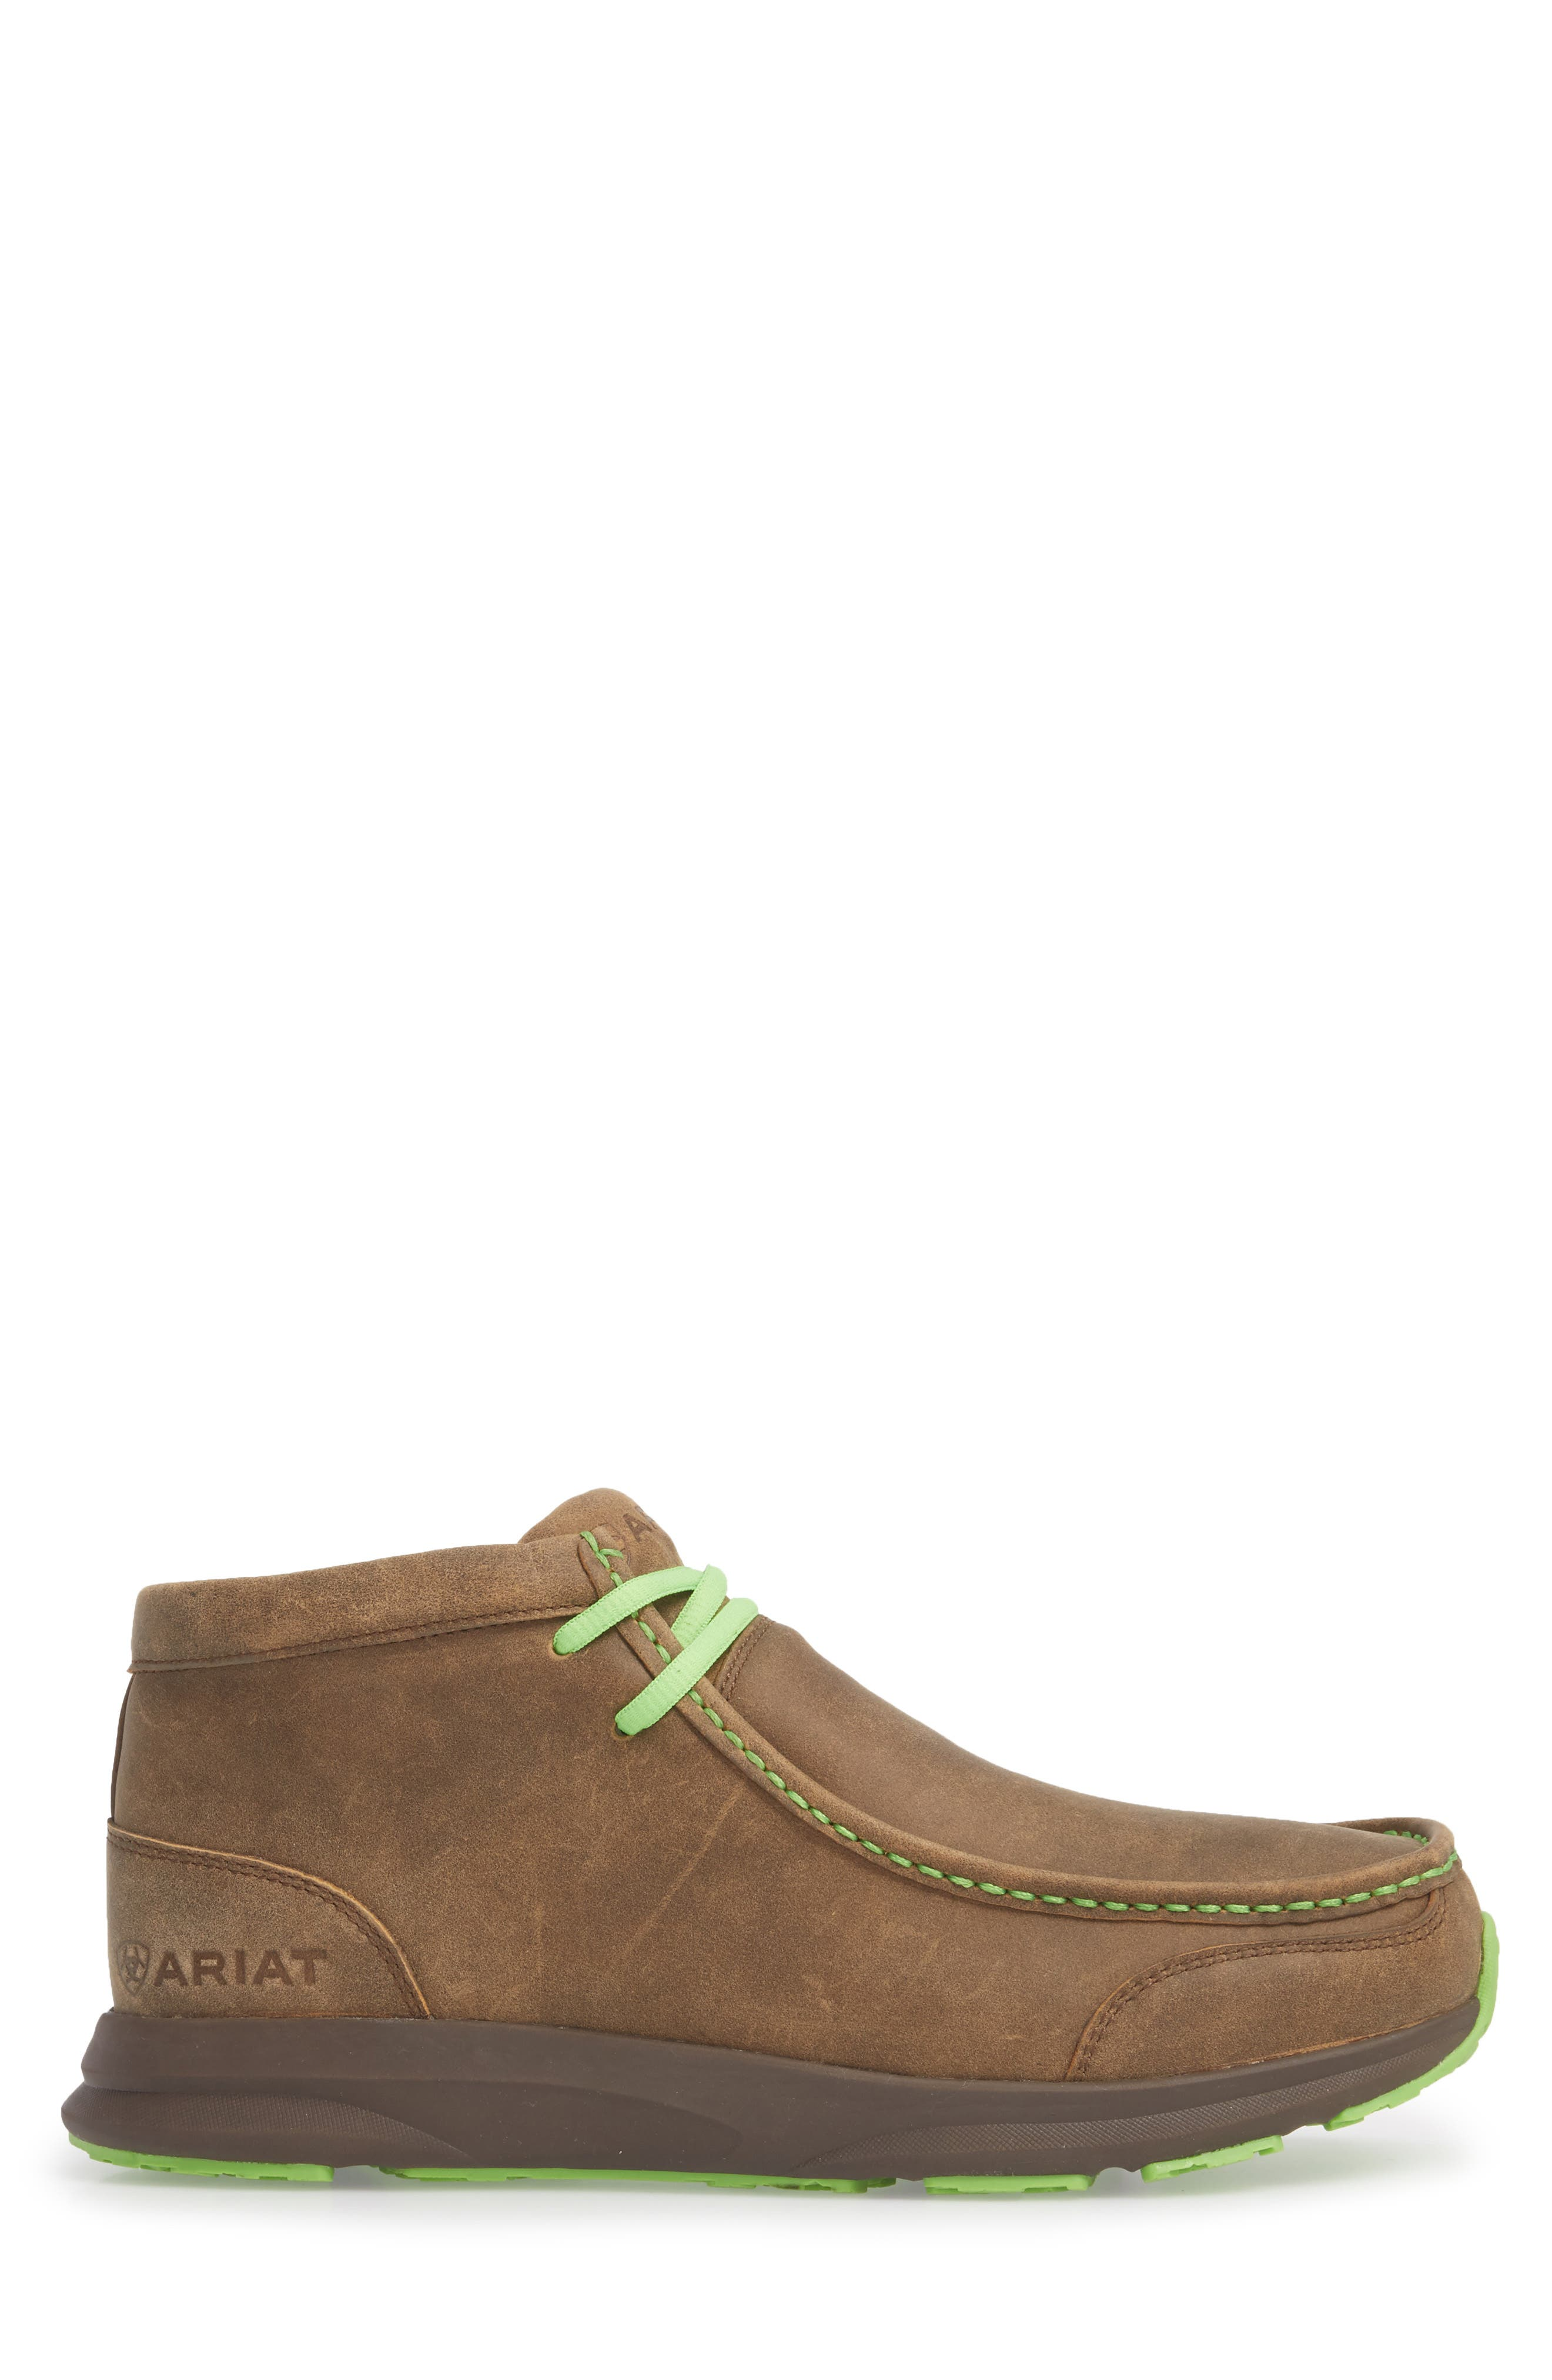 Spitfire Chukka Boot,                             Alternate thumbnail 3, color,                             Brown Bomber Leather